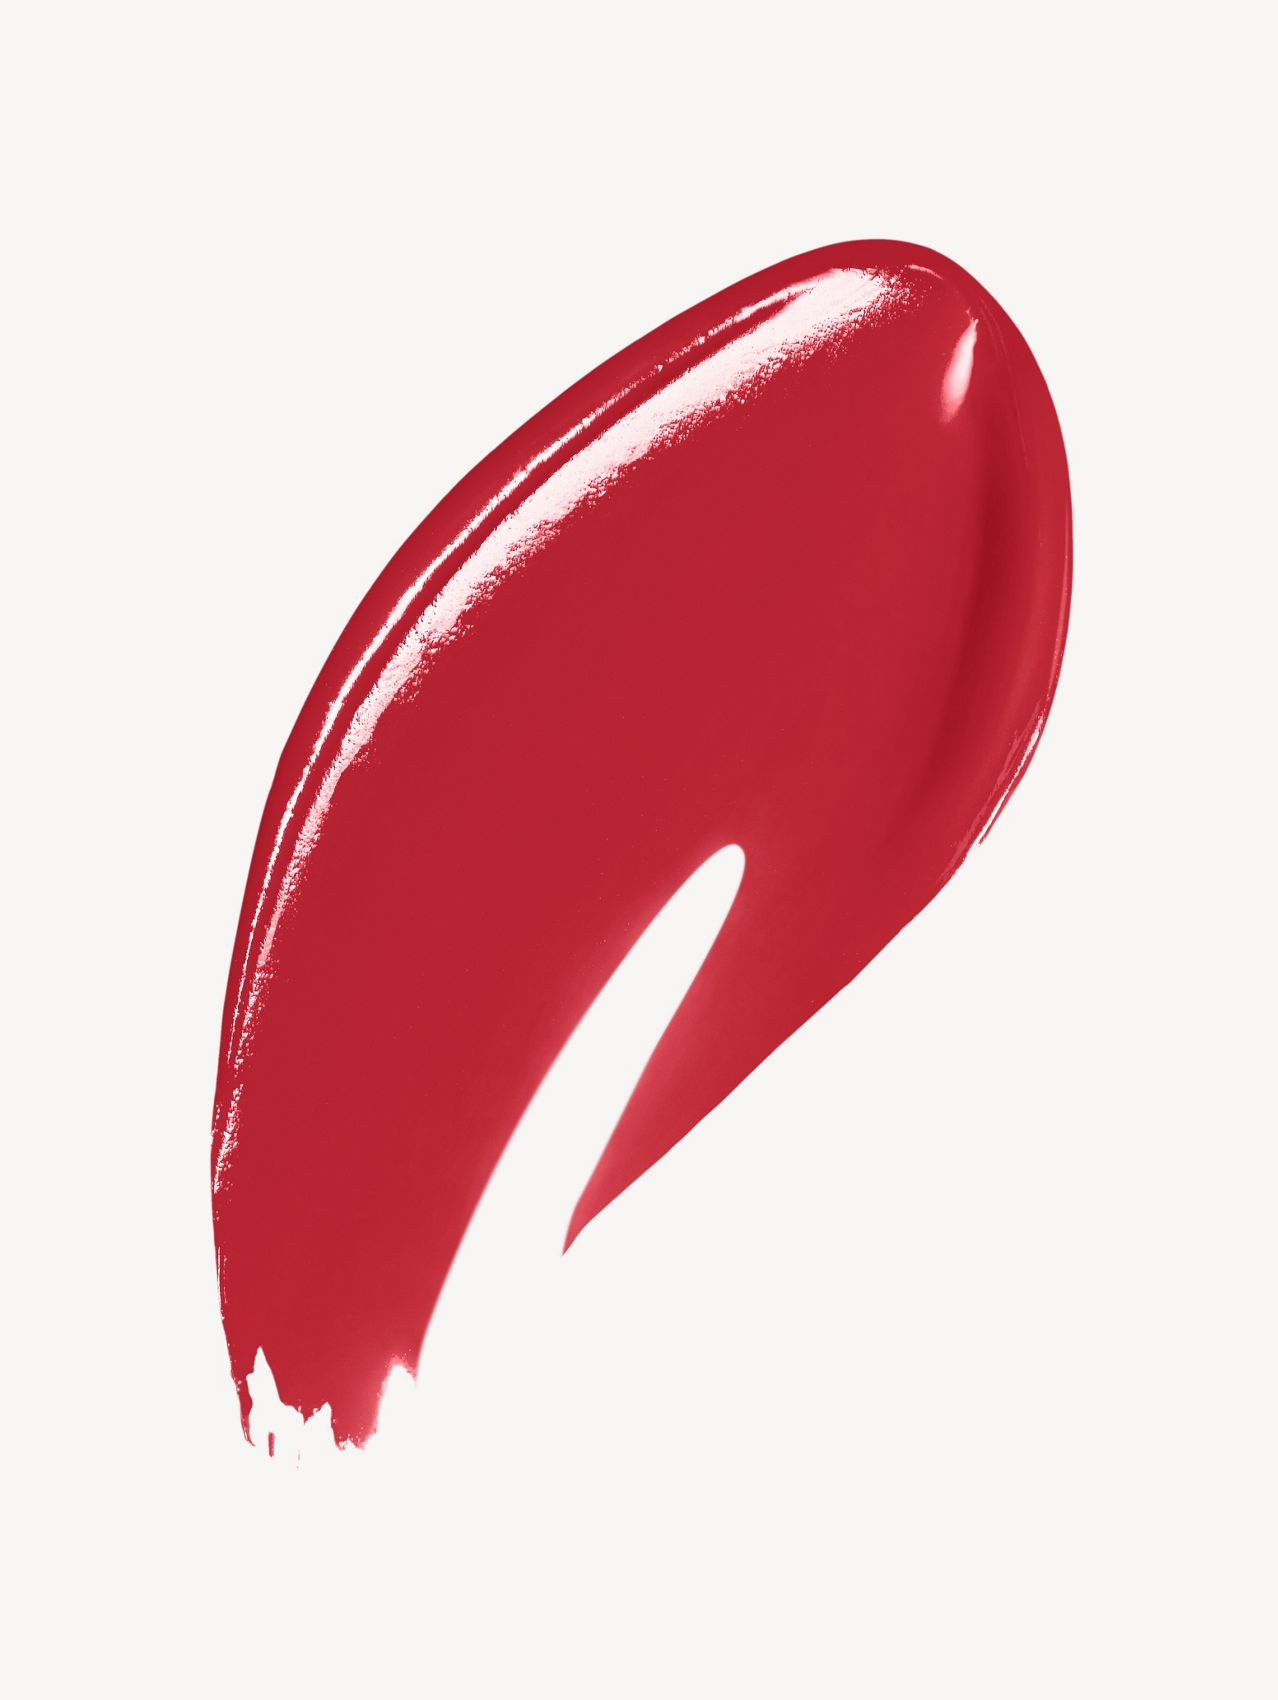 Burberry Kisses – Bold Cherry No.103